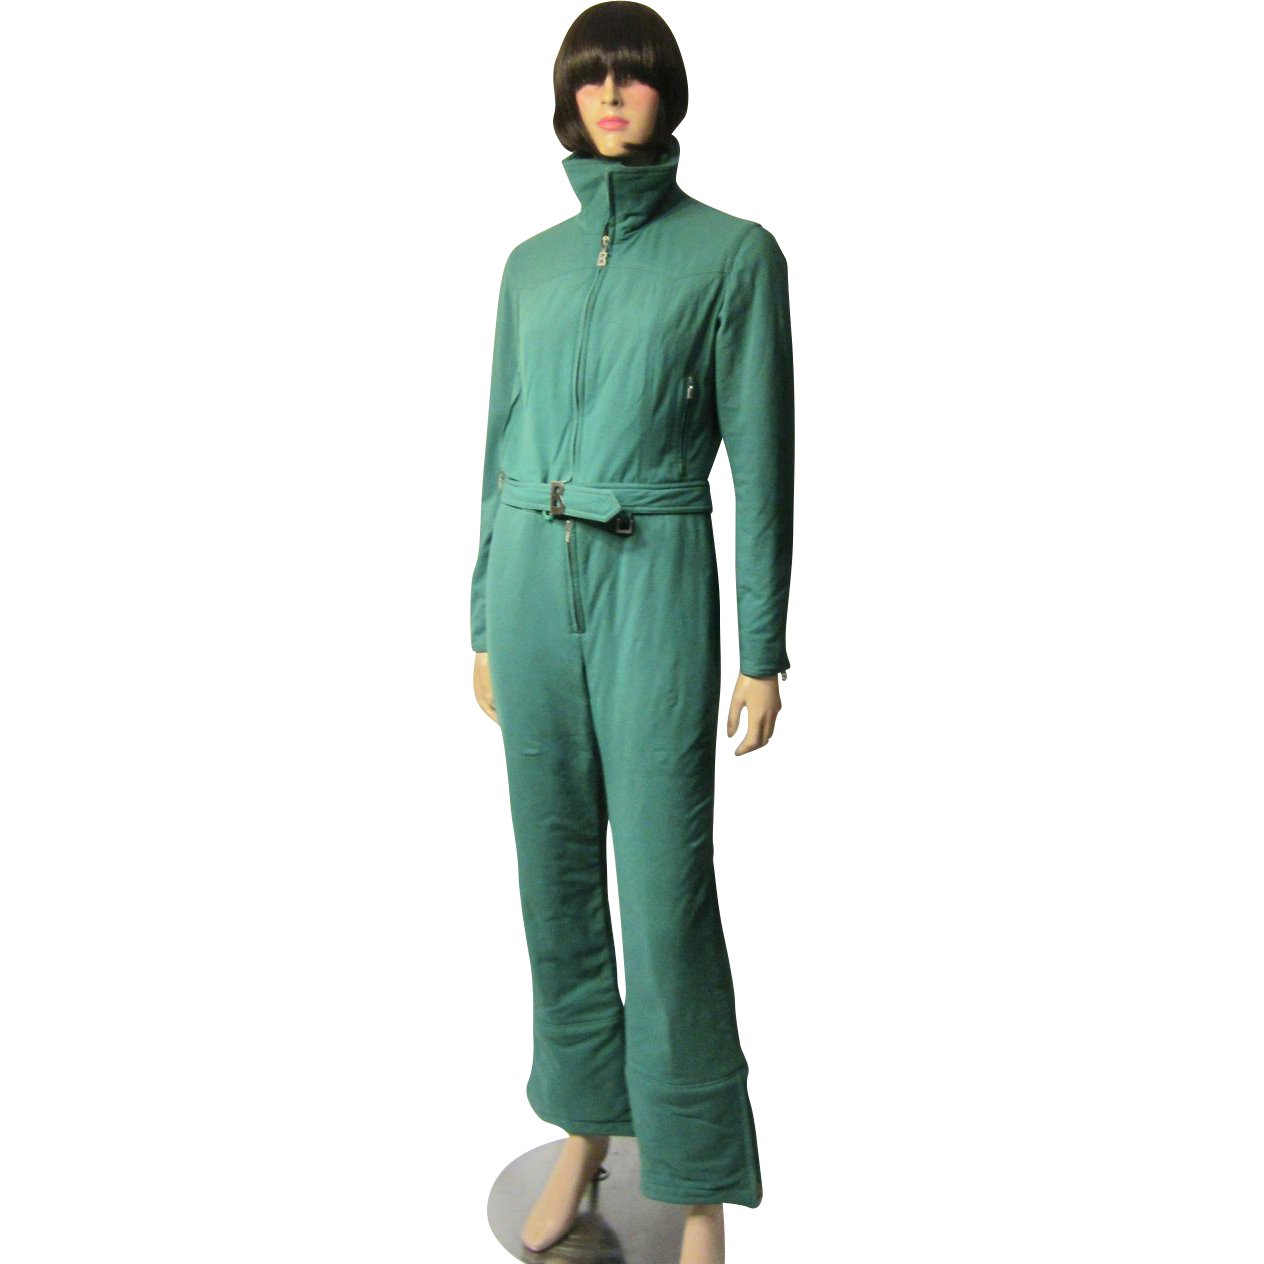 Ski Suit X22Bognerx22 Viridian Green Ski on two lane lighting